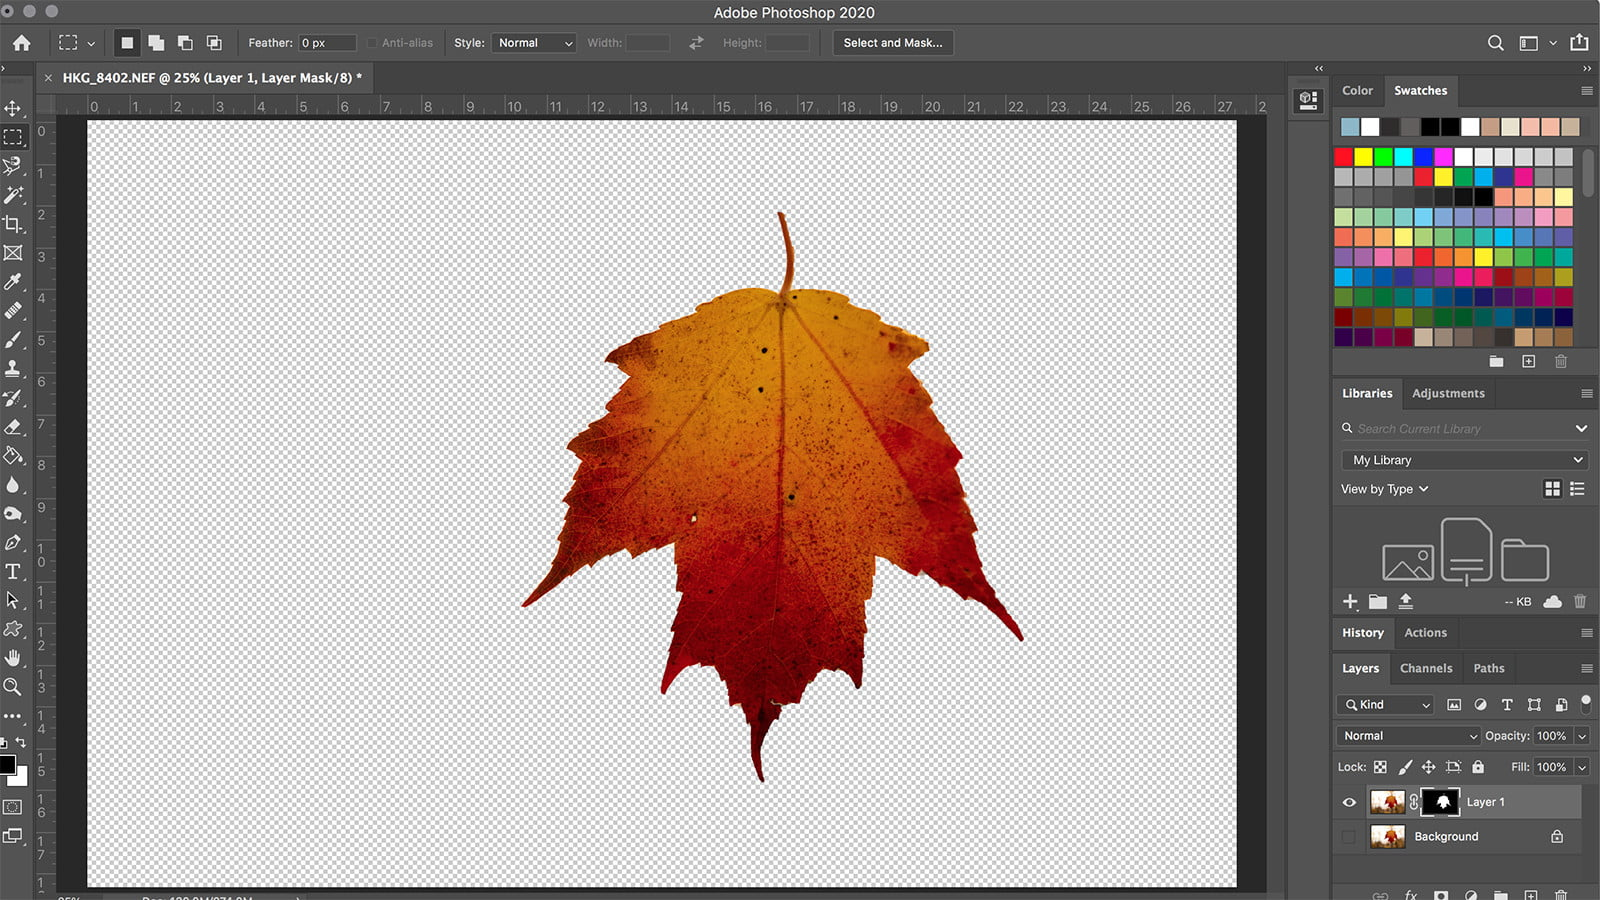 How to Make a Background Transparent in Photoshop | Digital Trends